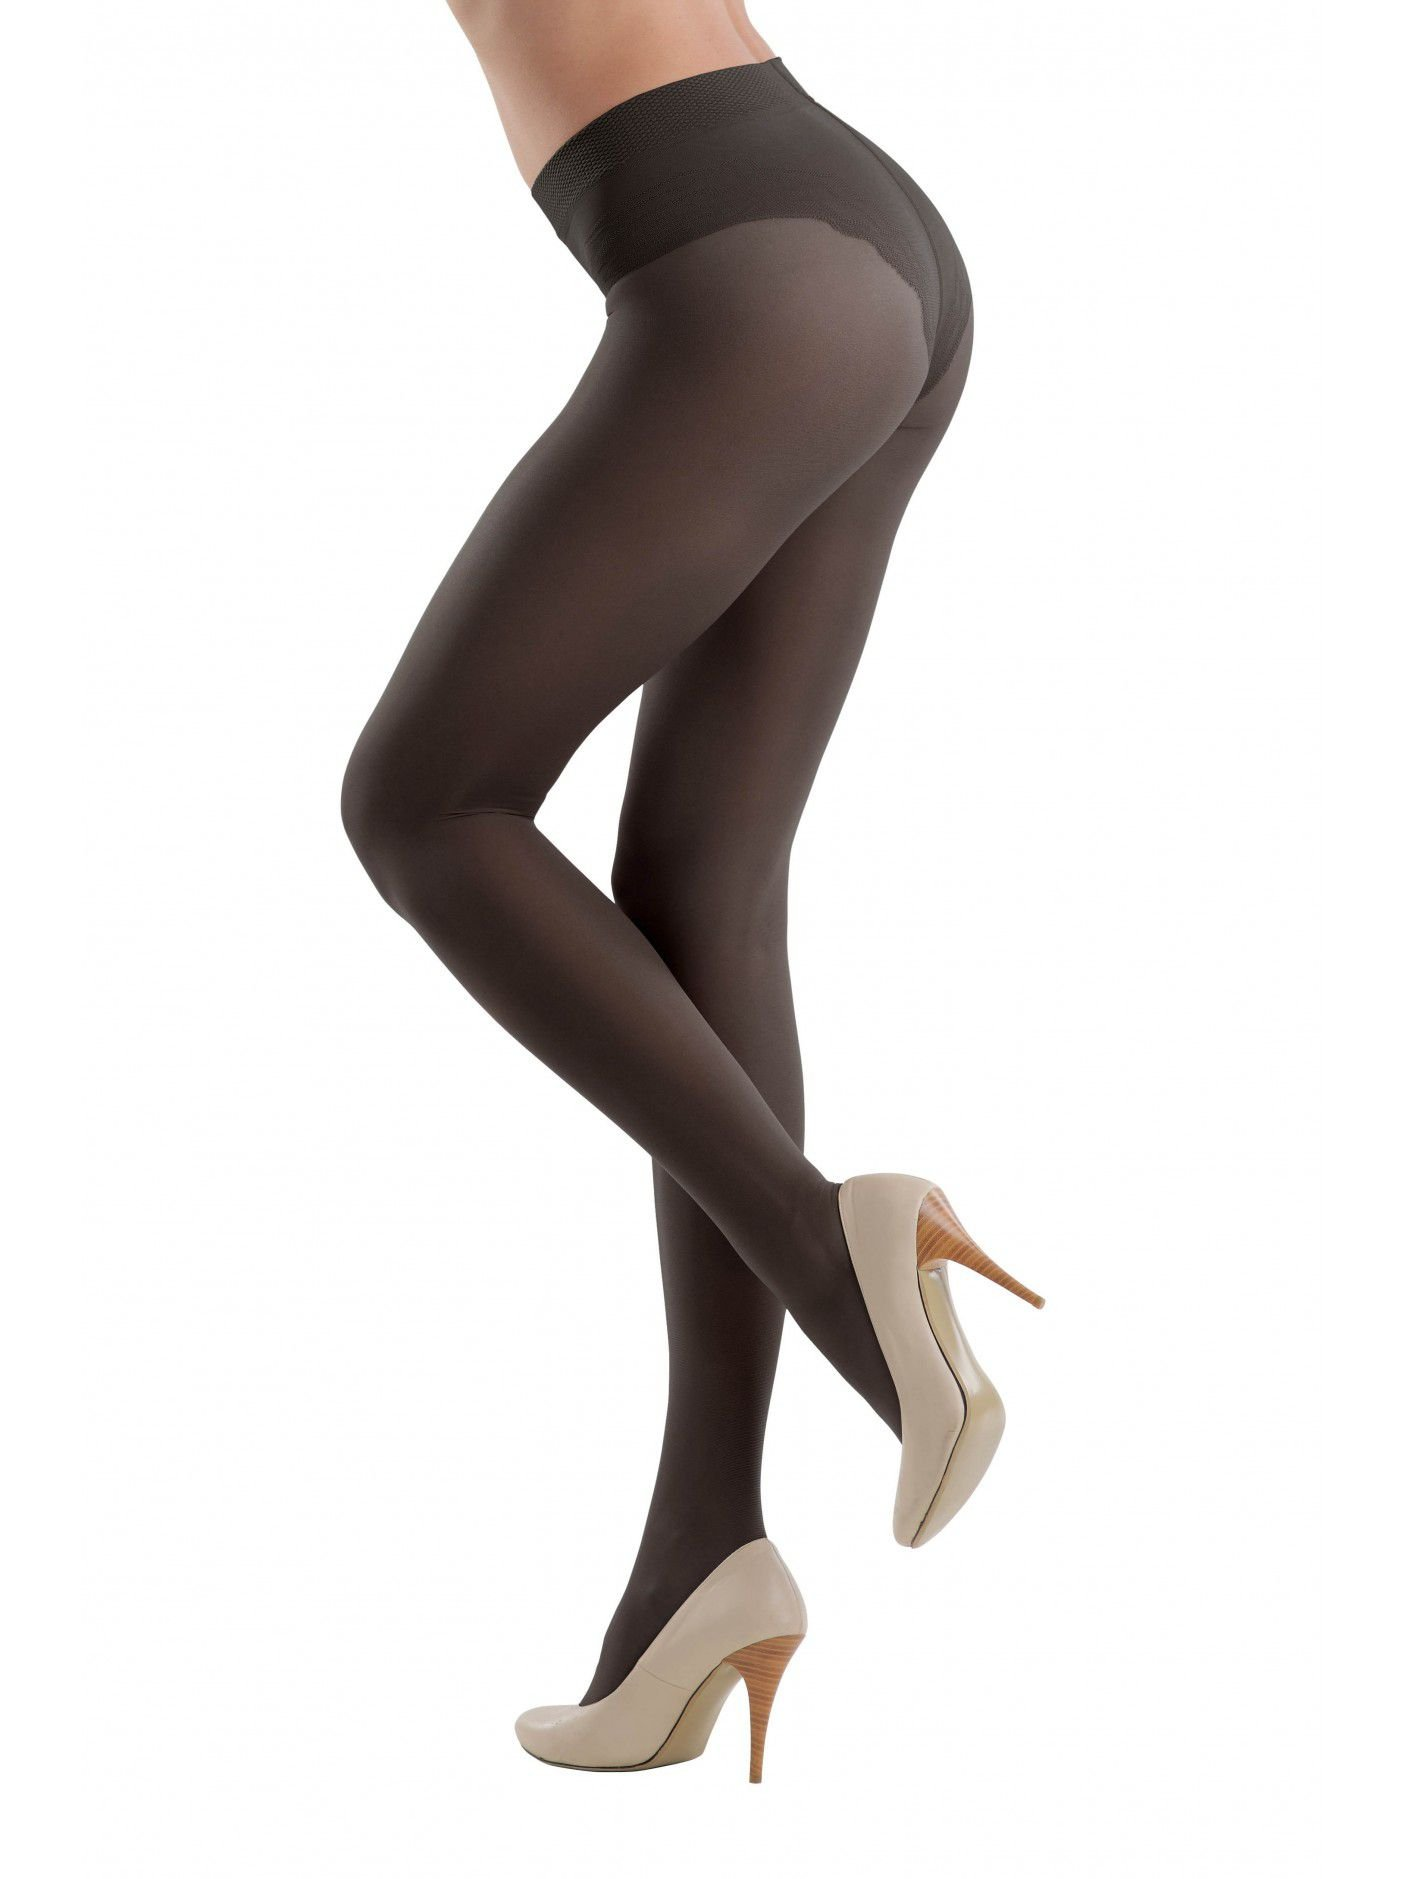 Conte Style Women's 40 Denier Shaping Compression Pantyhose Tights - Black, Small